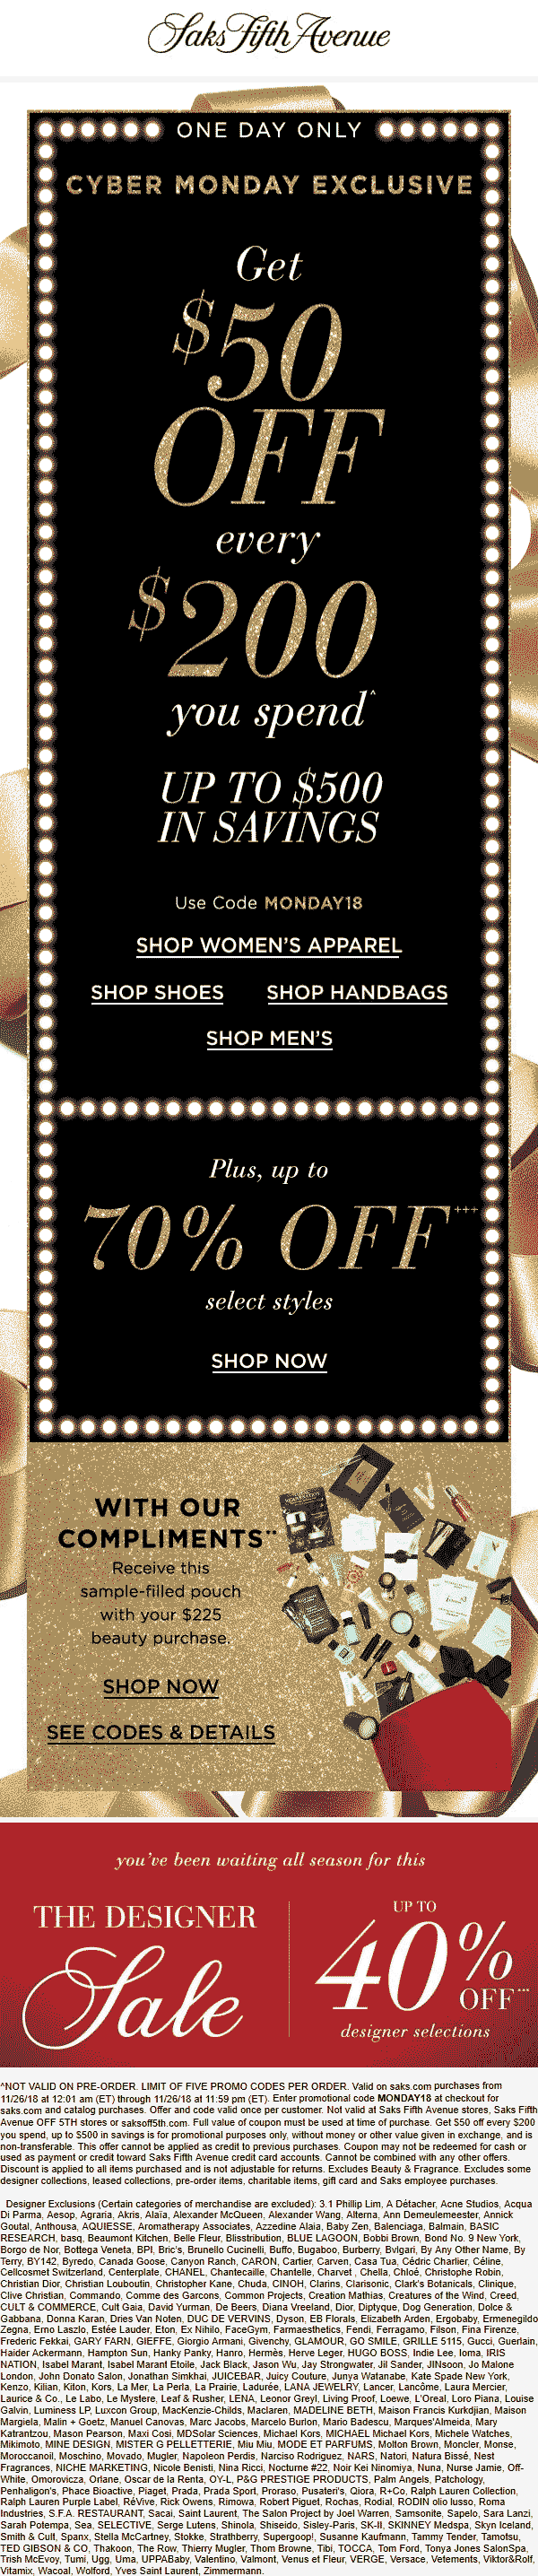 Saks Fifth Avenue Coupon December 2019 $50 off every $200 online today at Saks Fifth Avenue via promo code MONDAY18